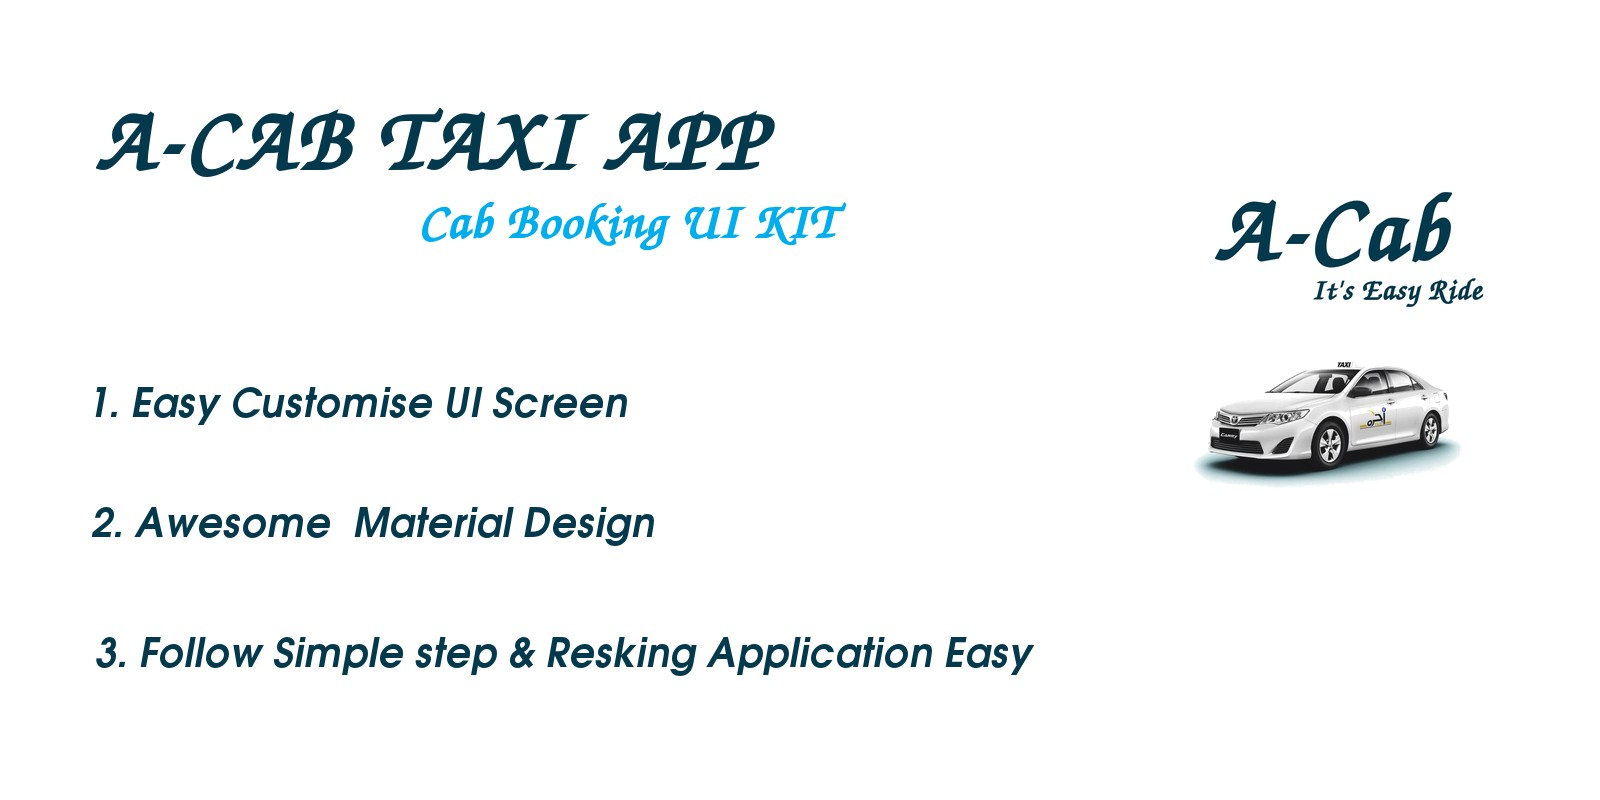 A-Cab Taxi - Android Studio UI Kit